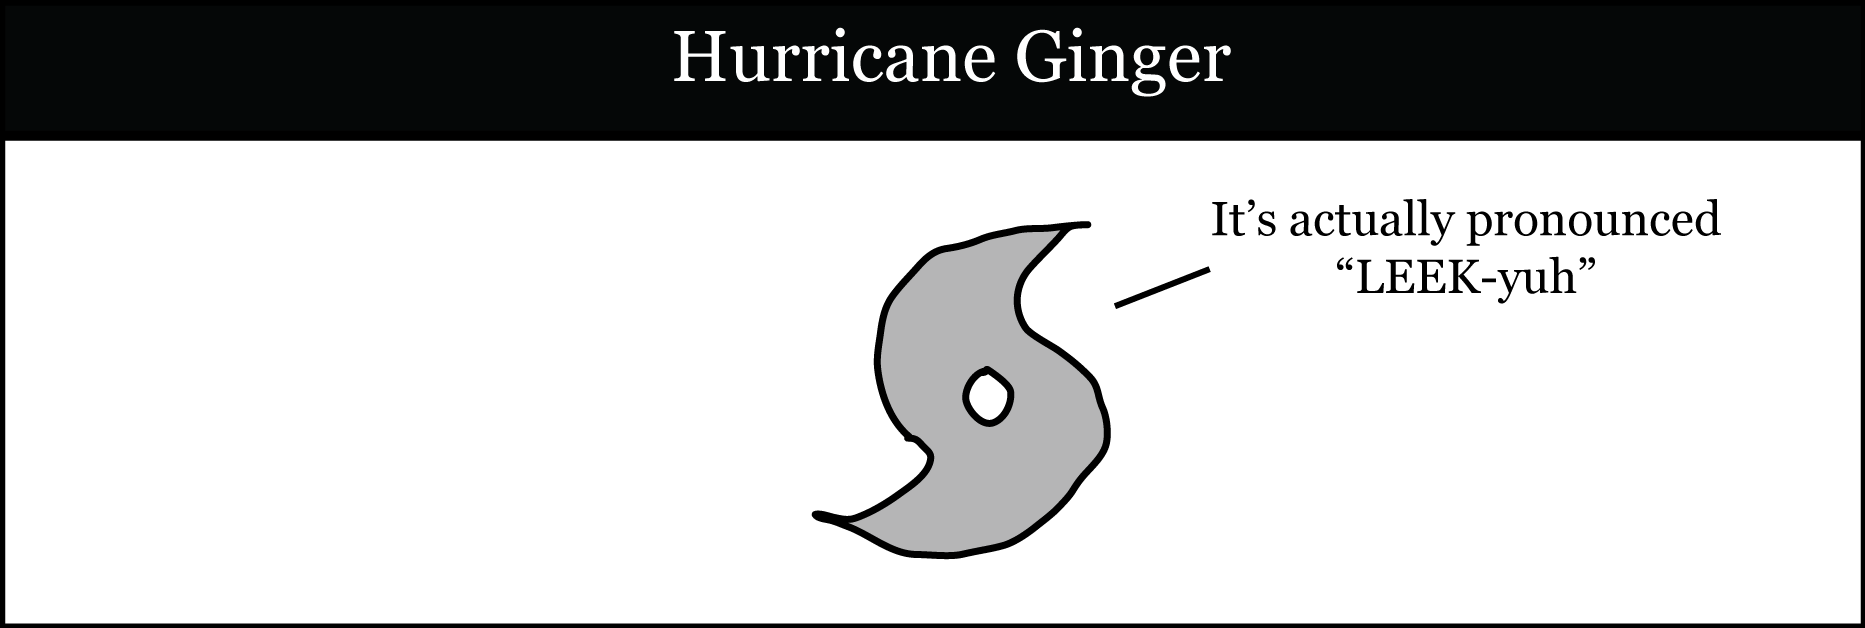 """Hurricane Ginger. Picture is of a hurricane symbol saying """"It's actually pronounced LEEK-yuh"""""""